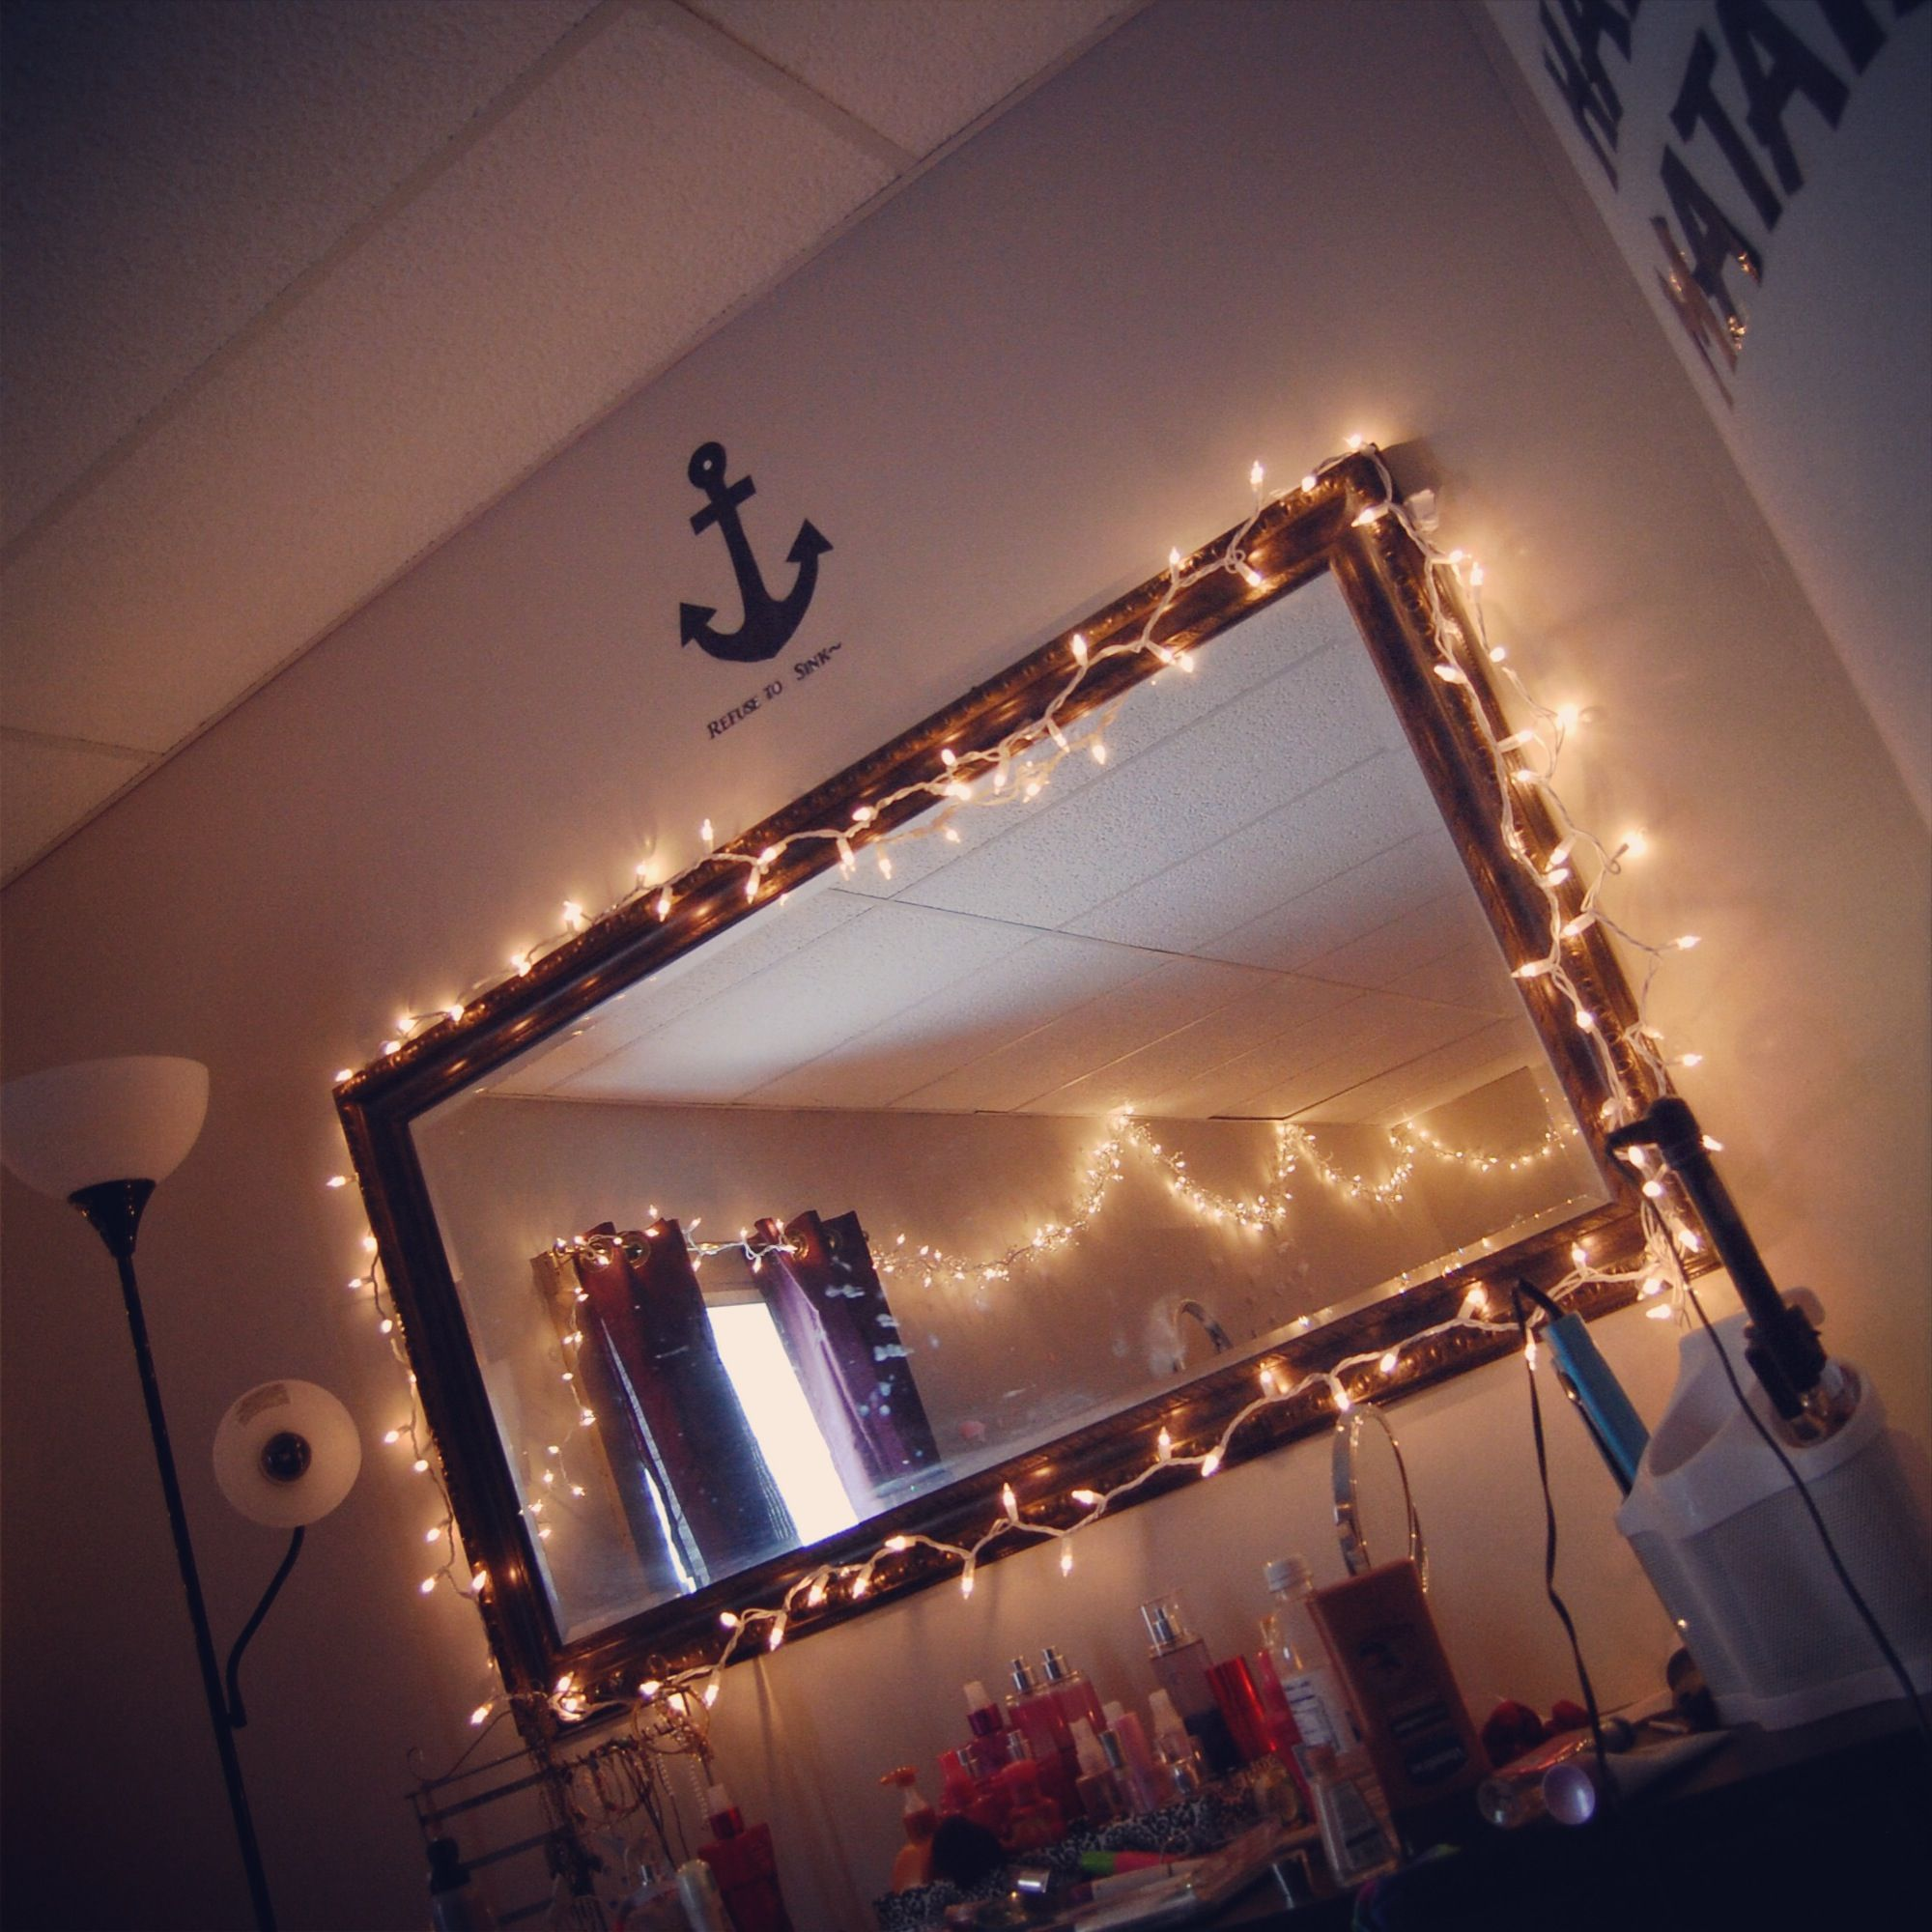 Vanity Mirror With Lights Around It : tumblr room. mirror with lights around them:) Future Home Pinterest String lights, The ...